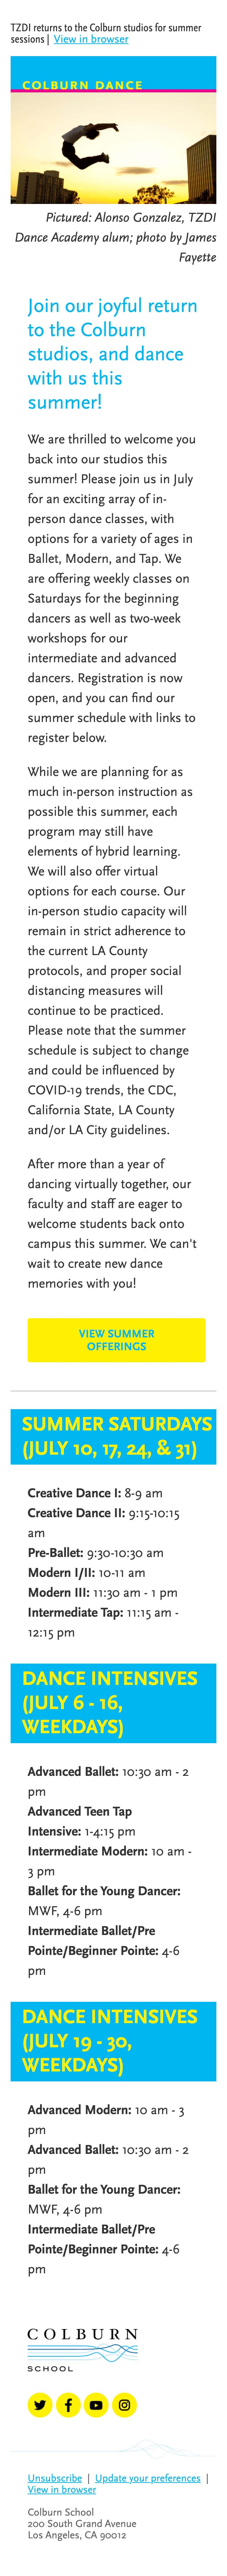 Dance with us on campus this summer - mobile view